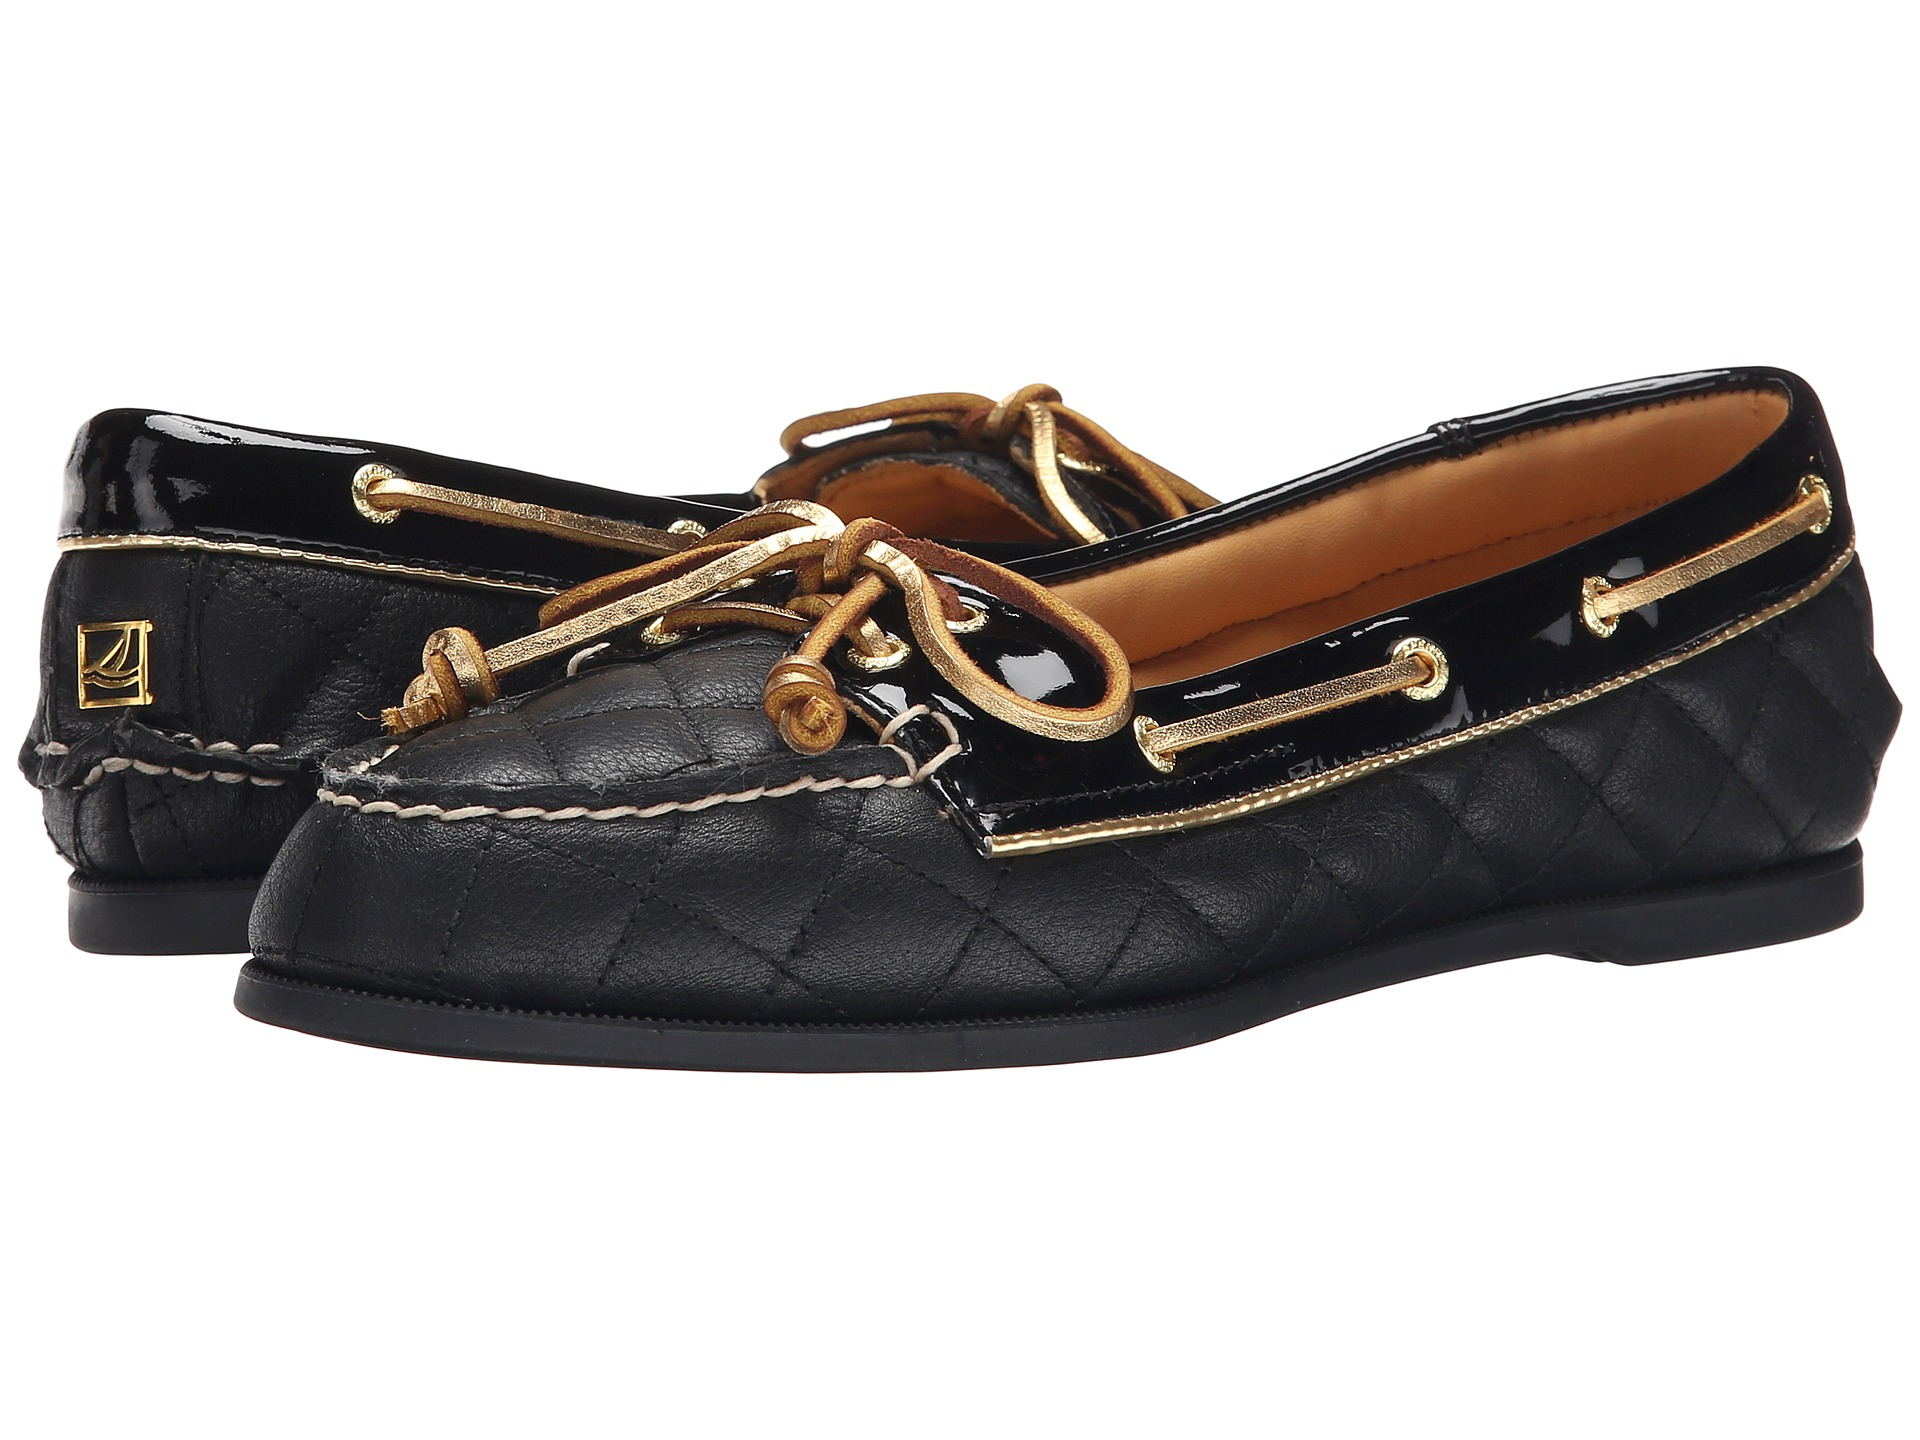 Sperry top-sider Gold Cup Audrey in Black (Black Quilted ... |Sperry Gold